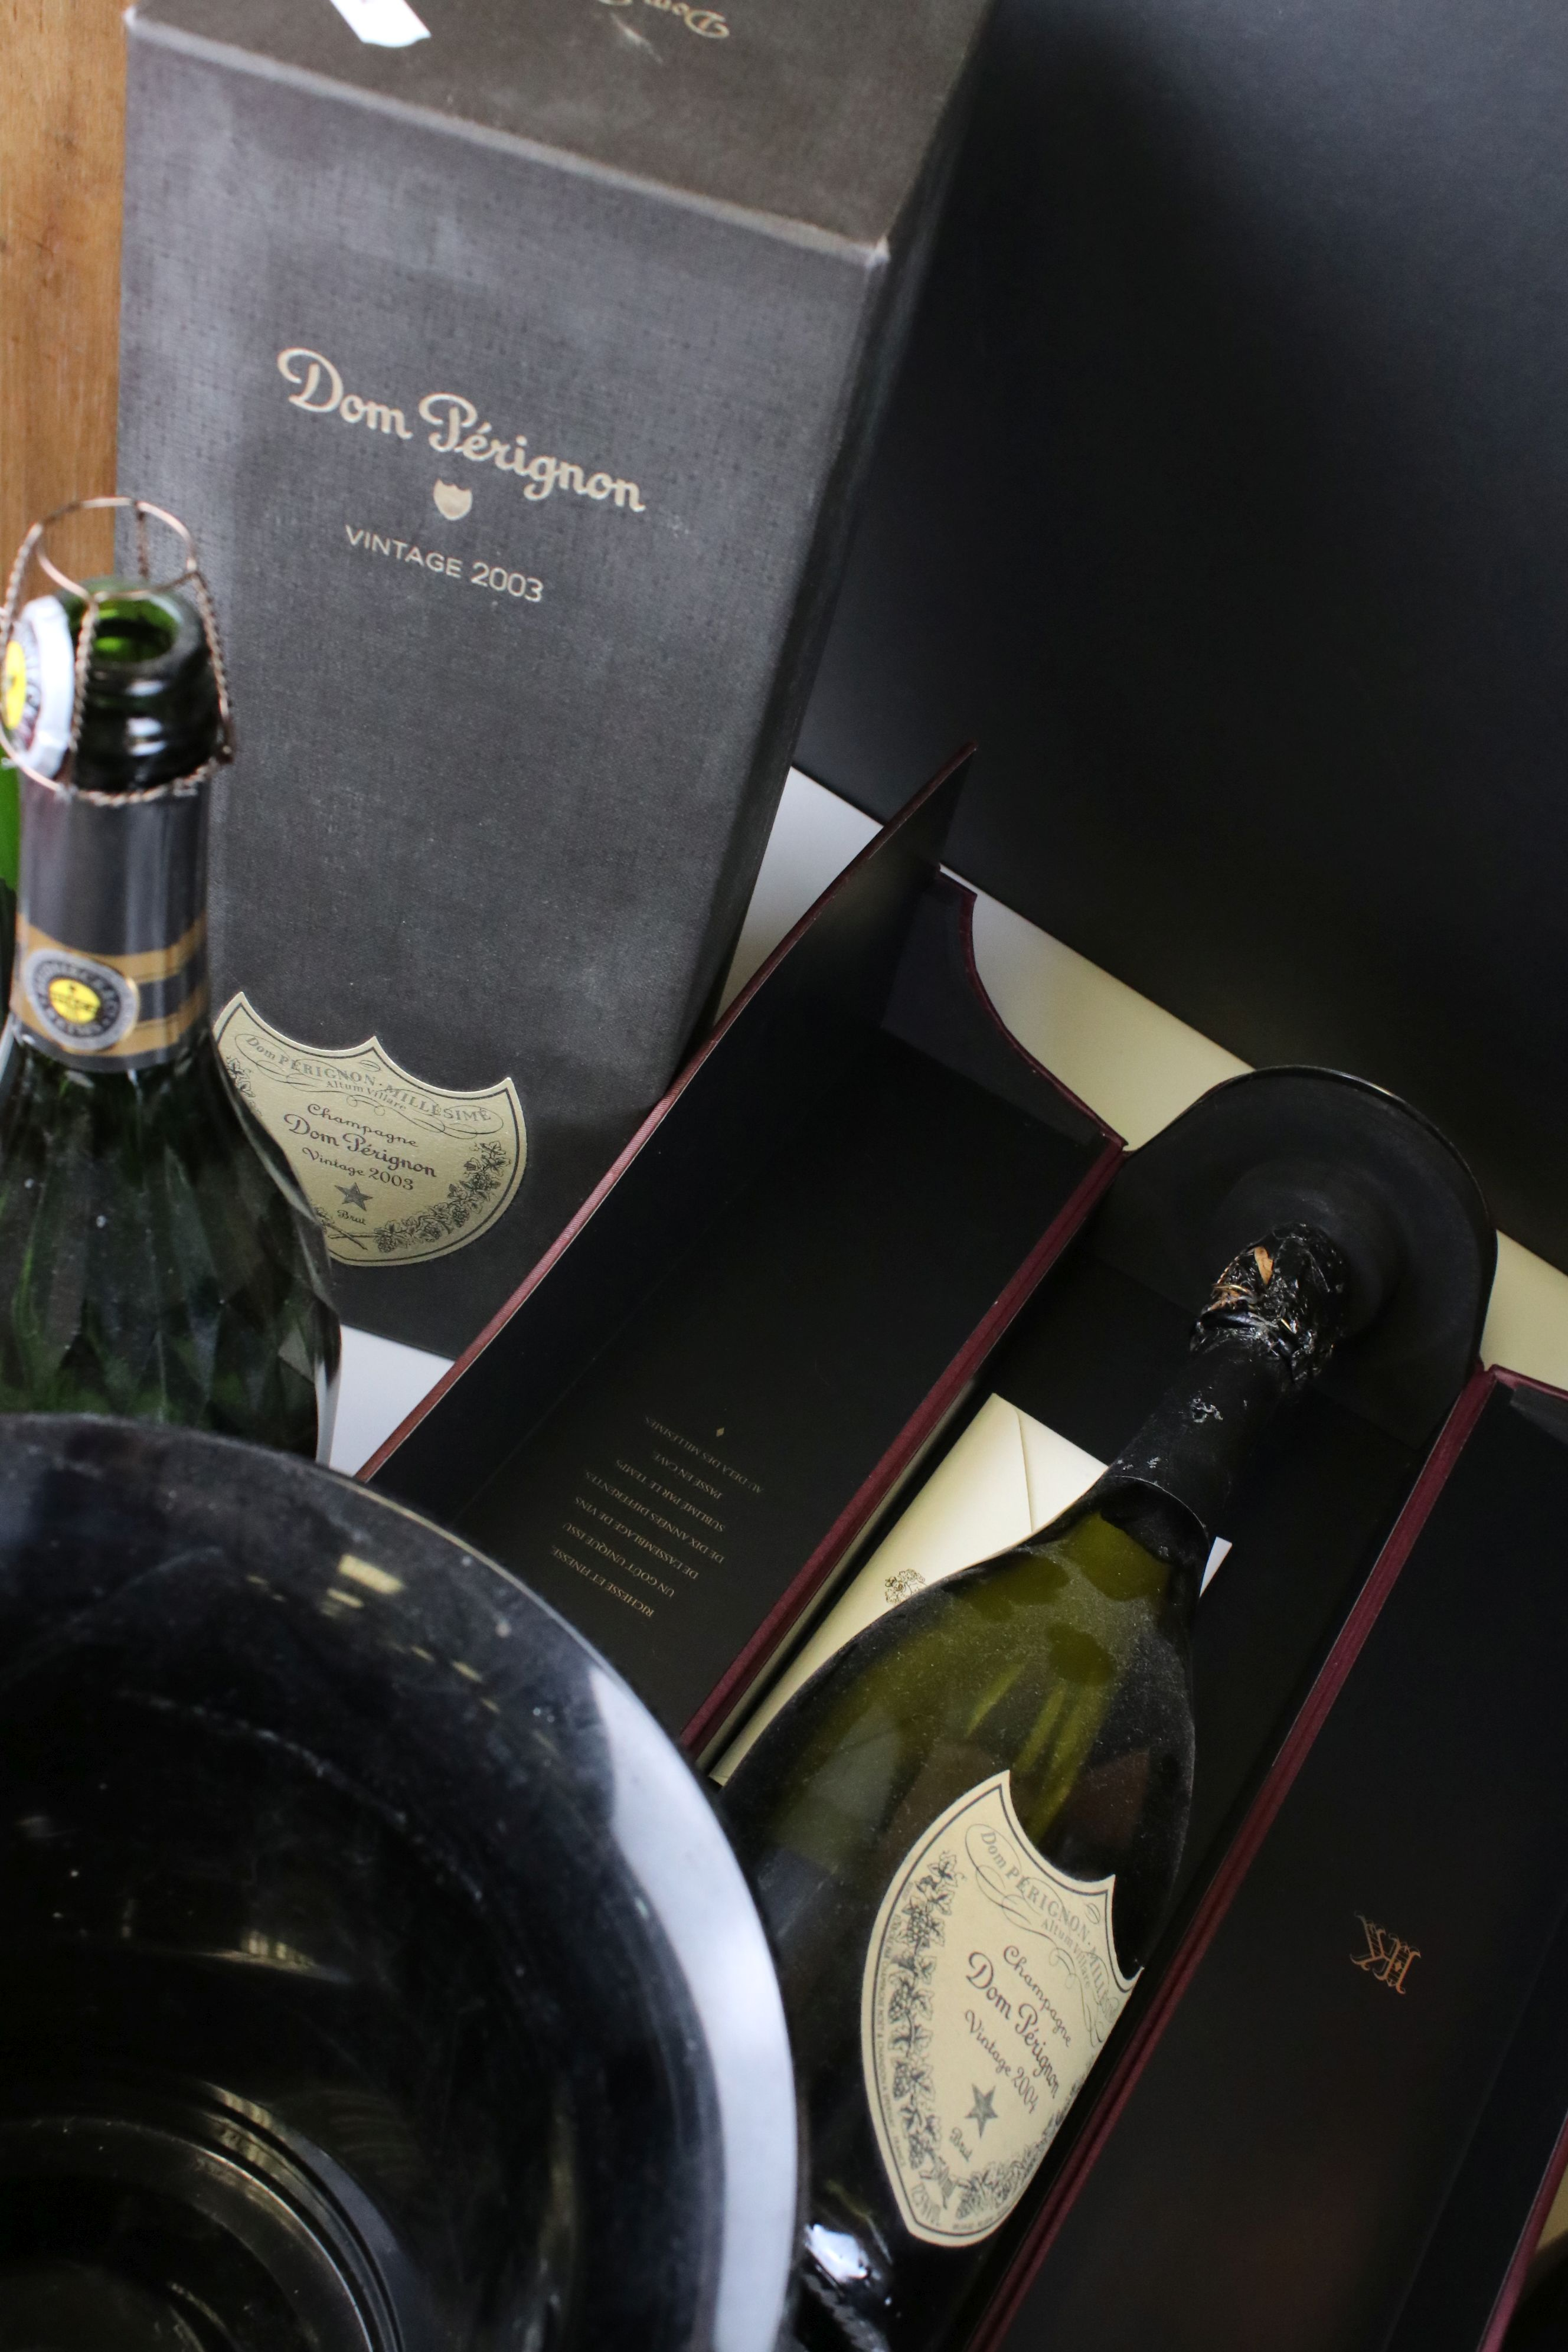 Moet & Chandon Top Hat Ice Bucket together with Five Further Ice Buckets, Moet & Chandon Glass - Image 6 of 8